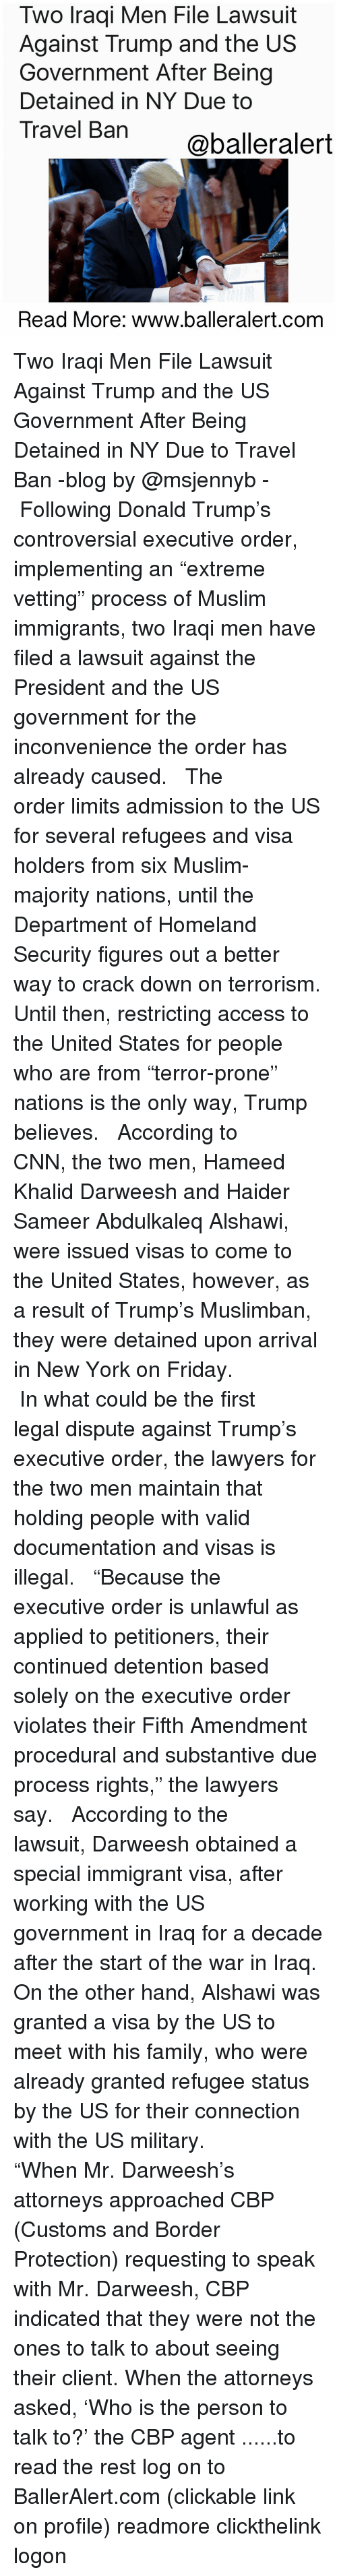 """detente: Two Iraqi Men File Lawsuit  Against Trump and the US  Government After Being  Detained in NY Due to  Travel Ban  @baller alert  Read More: www.balleralert.com Two Iraqi Men File Lawsuit Against Trump and the US Government After Being Detained in NY Due to Travel Ban -blog by @msjennyb - ⠀⠀⠀⠀⠀⠀⠀ ⠀⠀⠀⠀⠀⠀⠀ Following Donald Trump's controversial executive order, implementing an """"extreme vetting"""" process of Muslim immigrants, two Iraqi men have filed a lawsuit against the President and the US government for the inconvenience the order has already caused. ⠀⠀⠀⠀⠀⠀⠀ ⠀⠀⠀⠀⠀⠀⠀ The order limits admission to the US for several refugees and visa holders from six Muslim-majority nations, until the Department of Homeland Security figures out a better way to crack down on terrorism. Until then, restricting access to the United States for people who are from """"terror-prone"""" nations is the only way, Trump believes. ⠀⠀⠀⠀⠀⠀⠀ ⠀⠀⠀⠀⠀⠀⠀ According to CNN, the two men, Hameed Khalid Darweesh and Haider Sameer Abdulkaleq Alshawi, were issued visas to come to the United States, however, as a result of Trump's Muslimban, they were detained upon arrival in New York on Friday. ⠀⠀⠀⠀⠀⠀⠀ ⠀⠀⠀⠀⠀⠀⠀ In what could be the first legal dispute against Trump's executive order, the lawyers for the two men maintain that holding people with valid documentation and visas is illegal. ⠀⠀⠀⠀⠀⠀⠀ ⠀⠀⠀⠀⠀⠀⠀ """"Because the executive order is unlawful as applied to petitioners, their continued detention based solely on the executive order violates their Fifth Amendment procedural and substantive due process rights,"""" the lawyers say. ⠀⠀⠀⠀⠀⠀⠀ ⠀⠀⠀⠀⠀⠀⠀ According to the lawsuit, Darweesh obtained a special immigrant visa, after working with the US government in Iraq for a decade after the start of the war in Iraq. On the other hand, Alshawi was granted a visa by the US to meet with his family, who were already granted refugee status by the US for their connection with the US military. ⠀⠀⠀⠀⠀⠀⠀ ⠀⠀⠀⠀⠀⠀⠀ """"When Mr. Darweesh's att"""